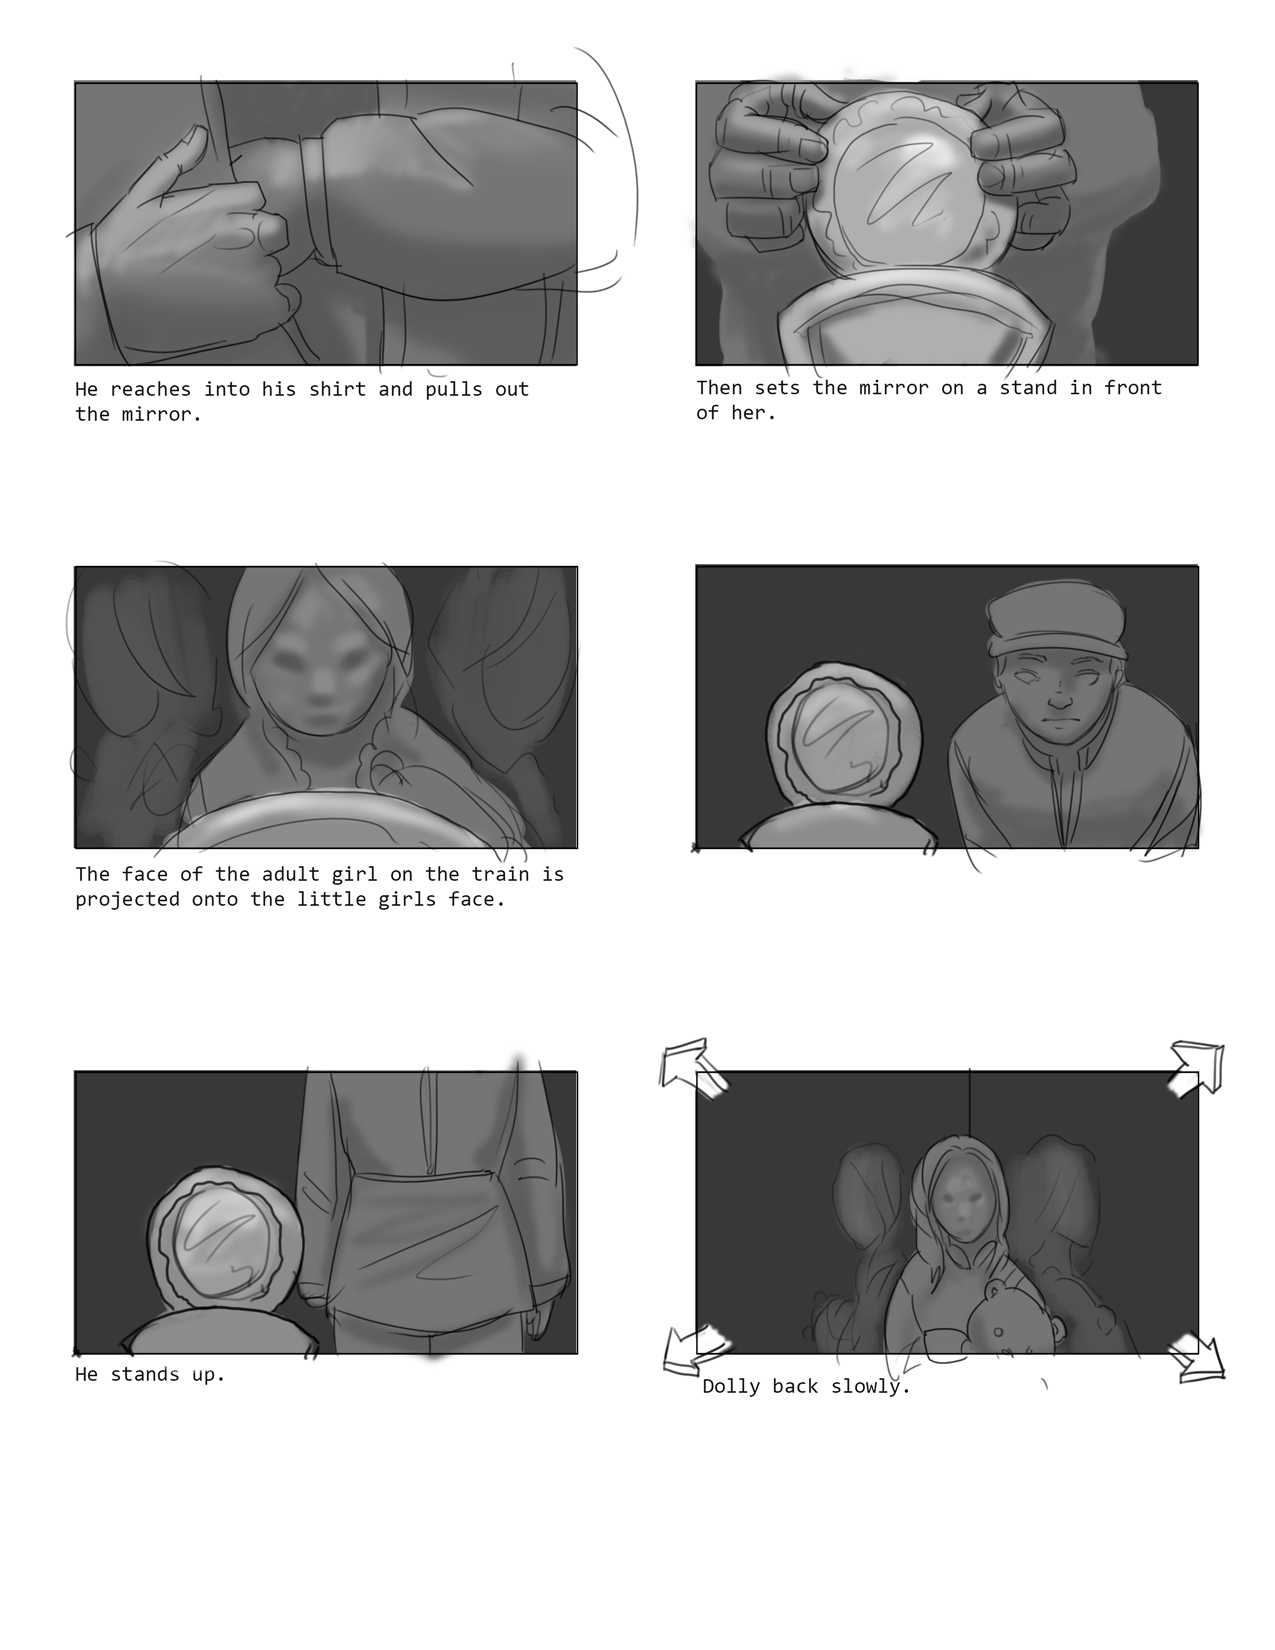 velorenstoryboards19.jpg